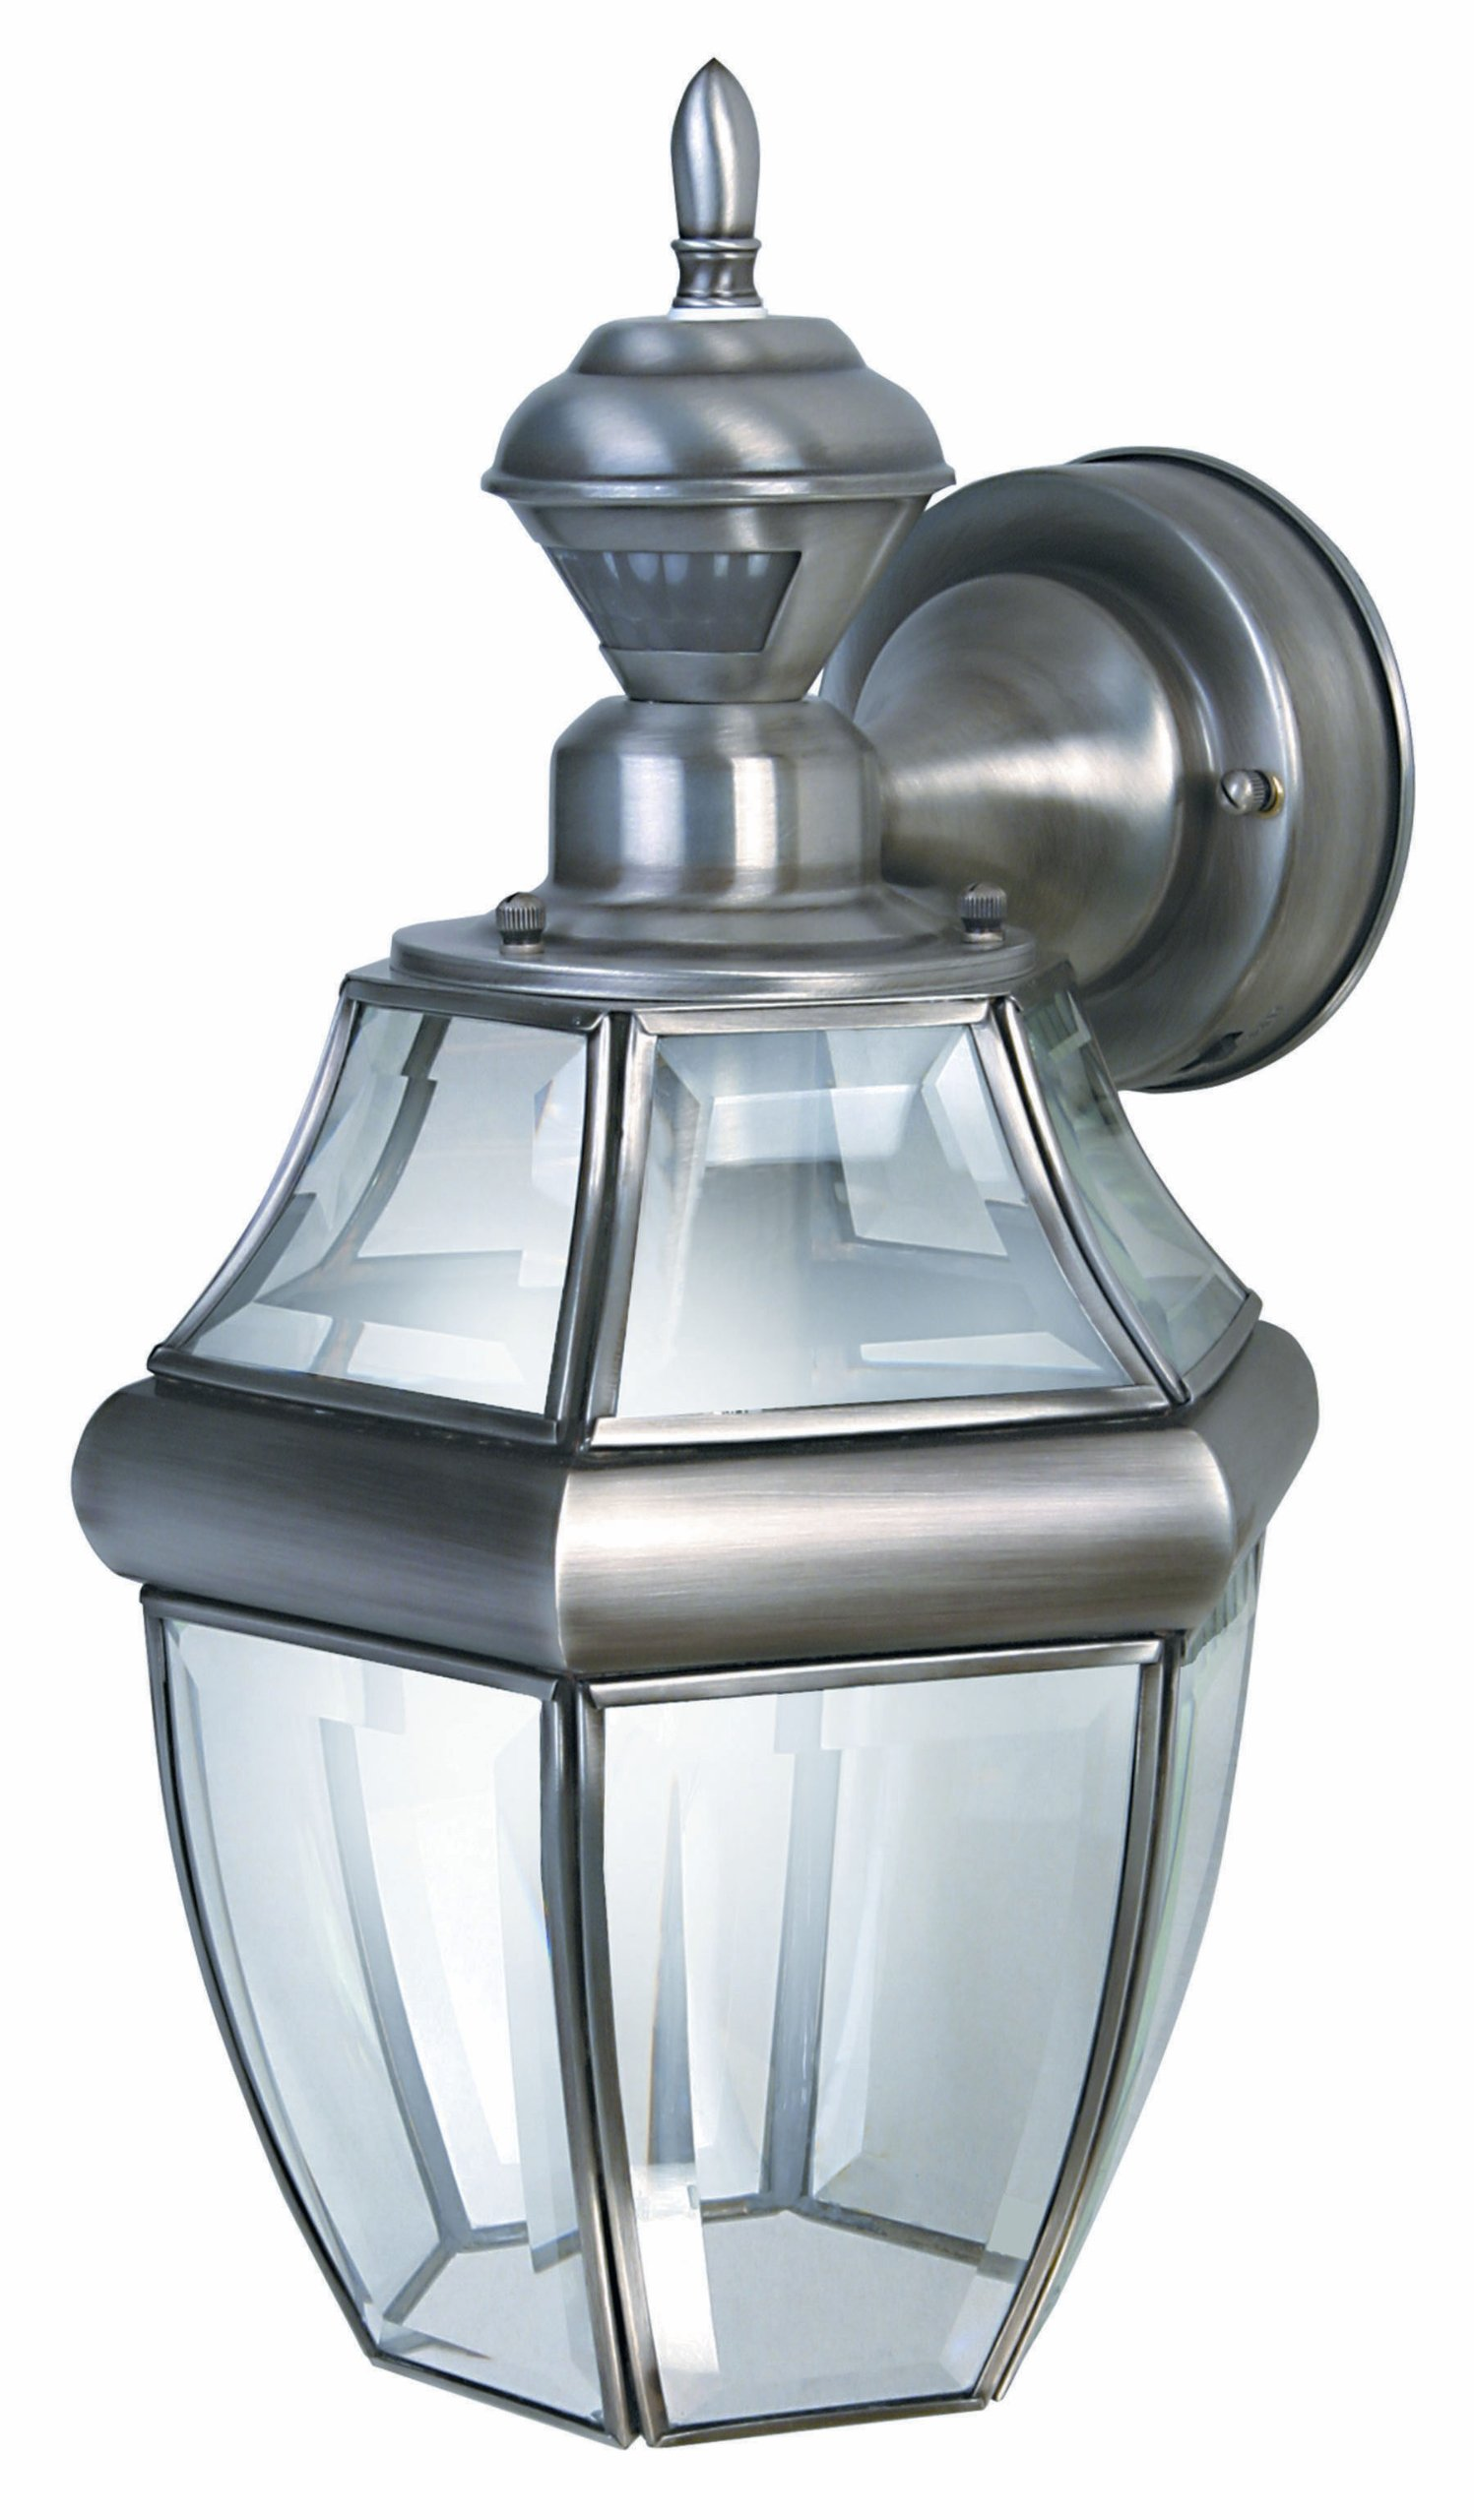 Heath/Zenith SL-4166-SA HZ-4166-SA Motion-Activated Six-Sided Carriage Light, Silver with Beveled Glass, 9.88 x 9.88 x 9.88, Antique by Heath/Zenith